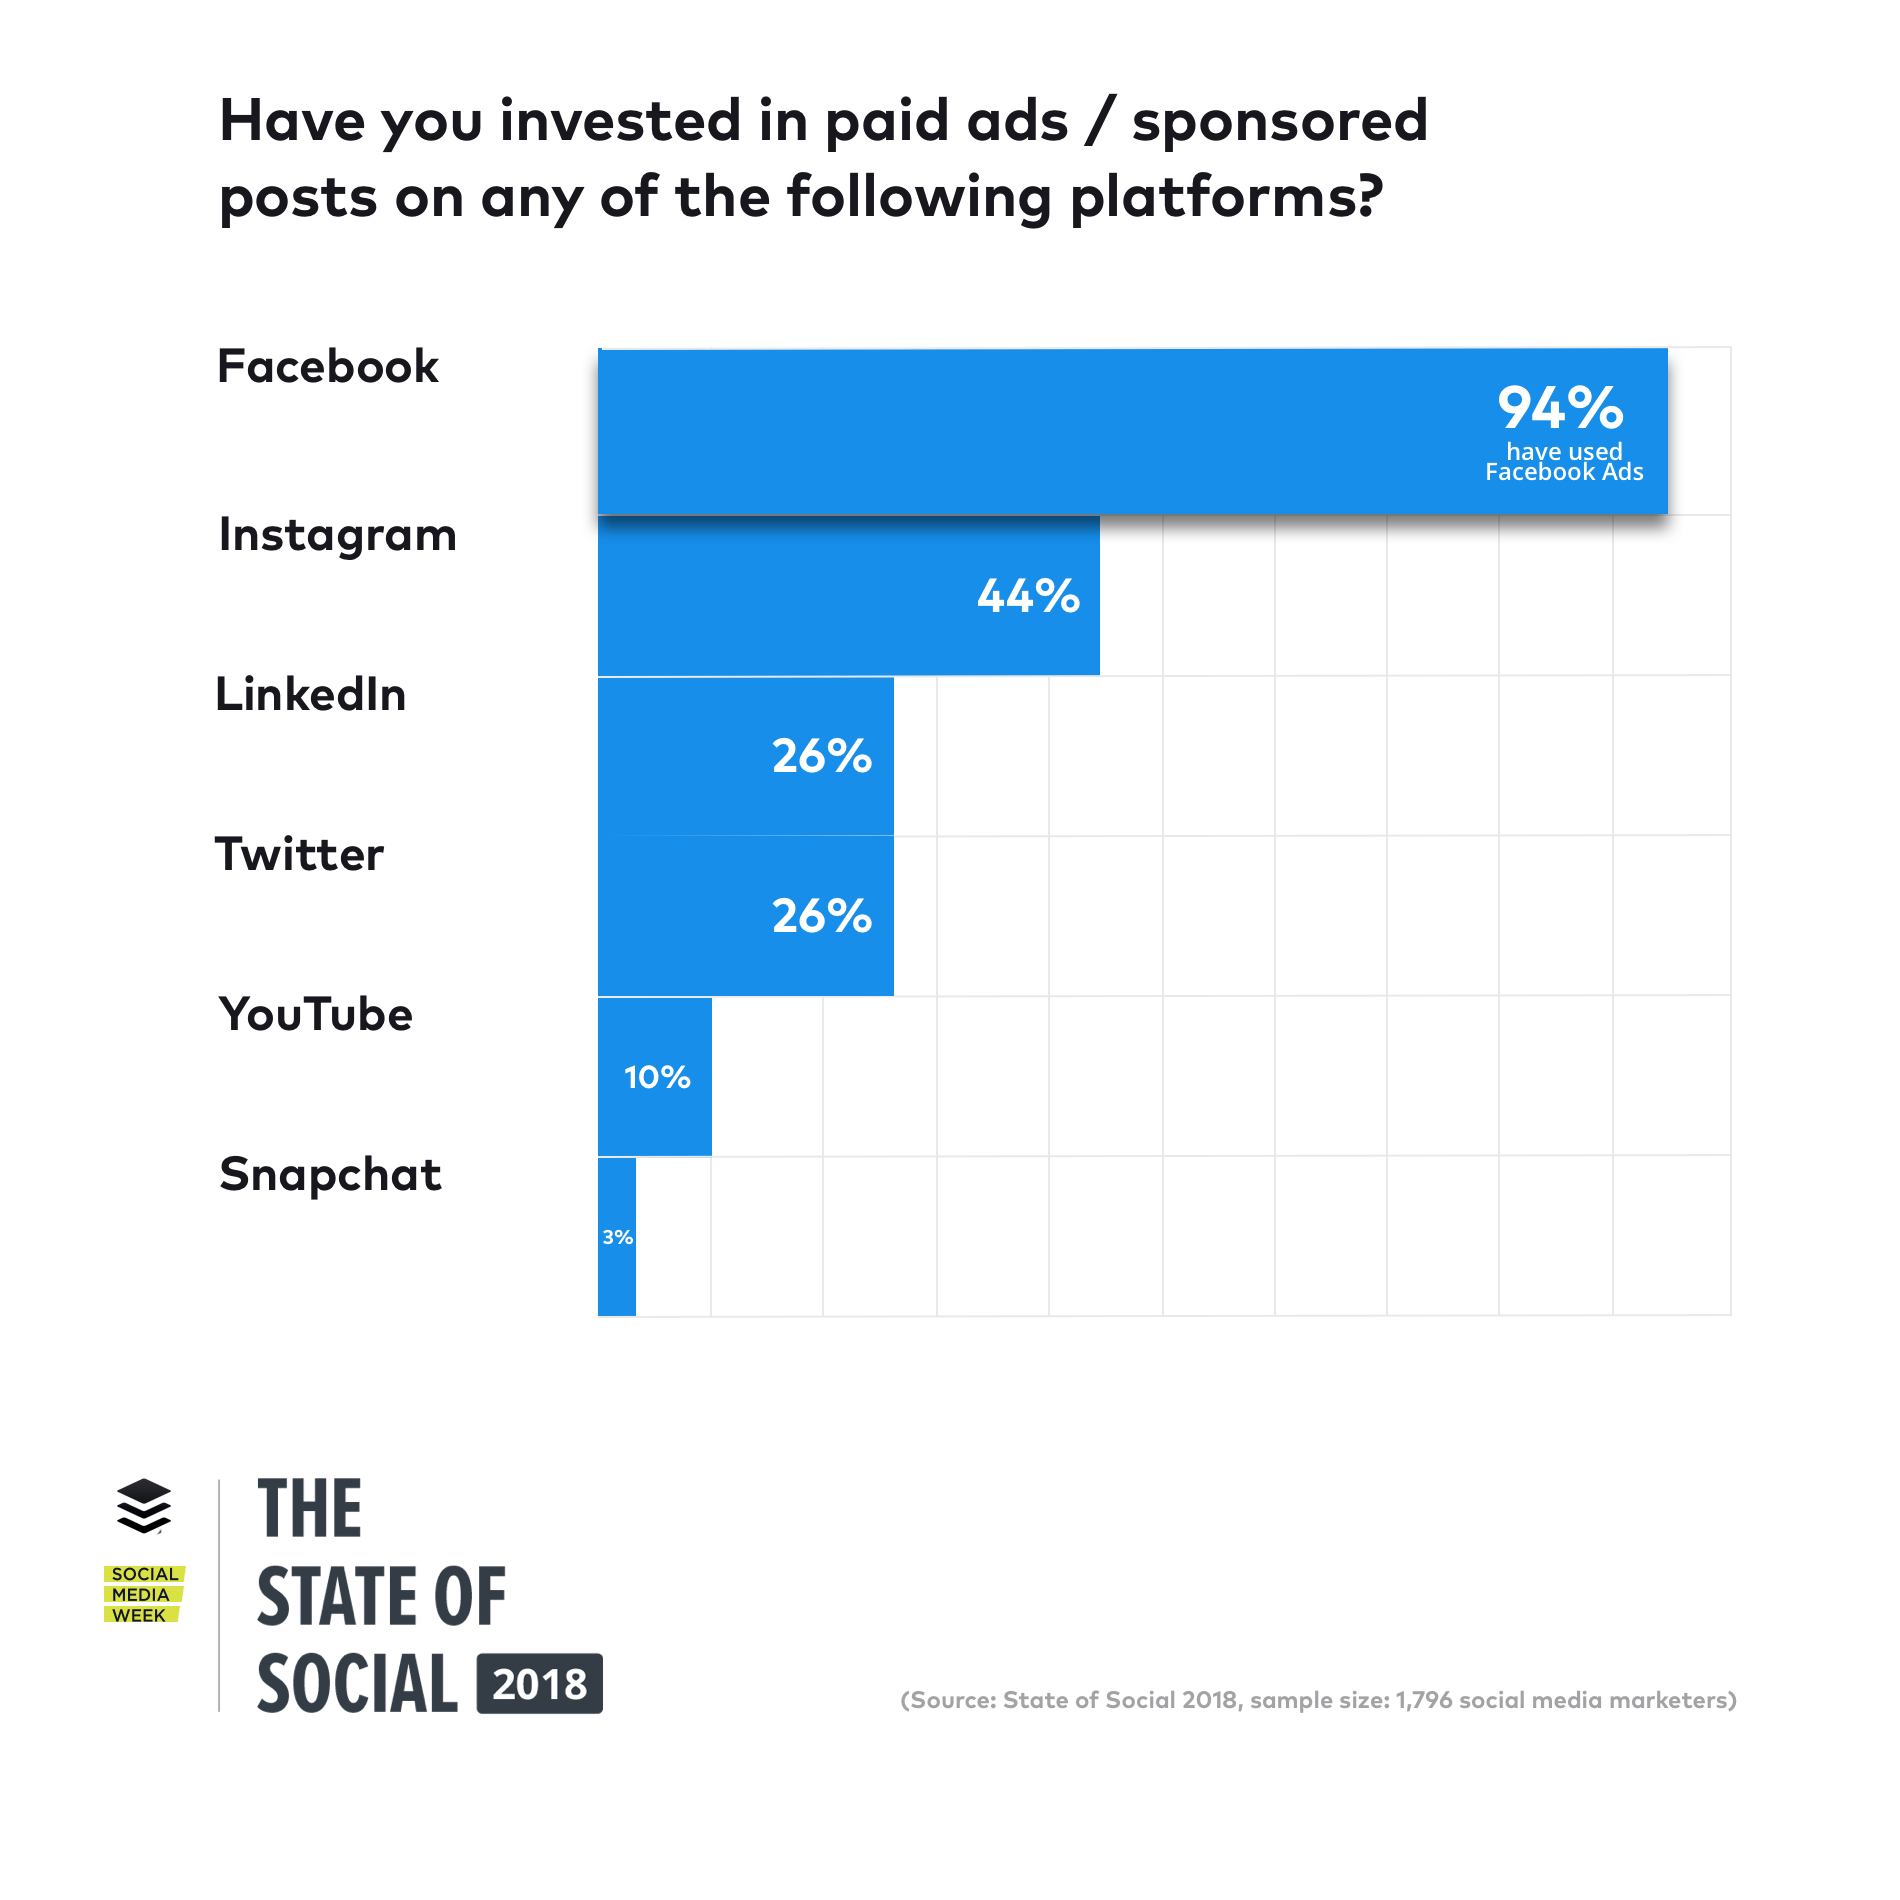 La mayoría de las veces, los expertos en marketing se centran en plataformas como Facebook, Instagram y LinkedIn según The State of Social 2018 Report.